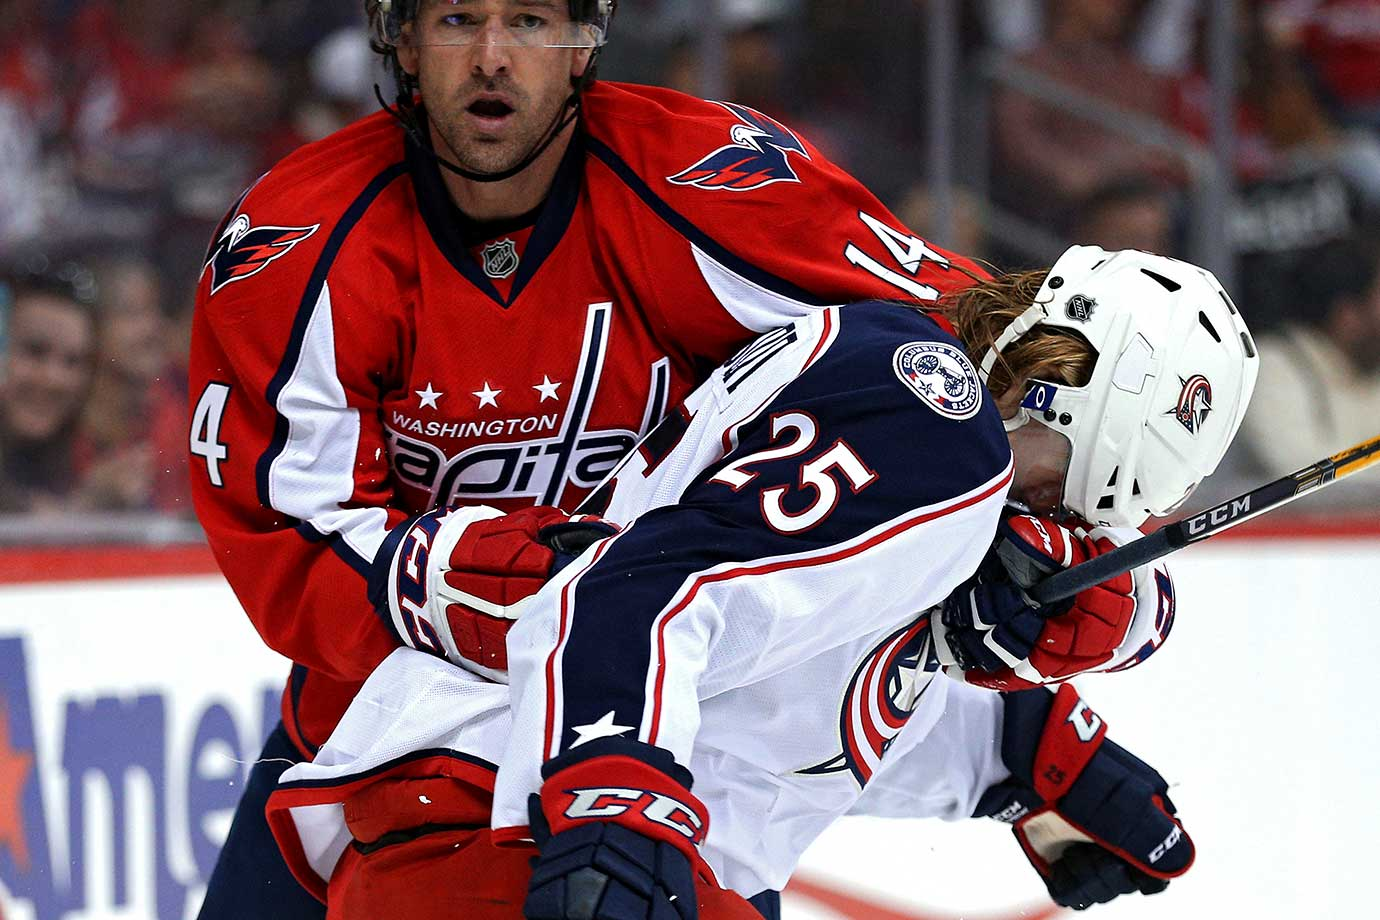 Justin Williams of the Washington Capitals rearranges the head gear of William Karlsson of the Columbus Blue Jackets.